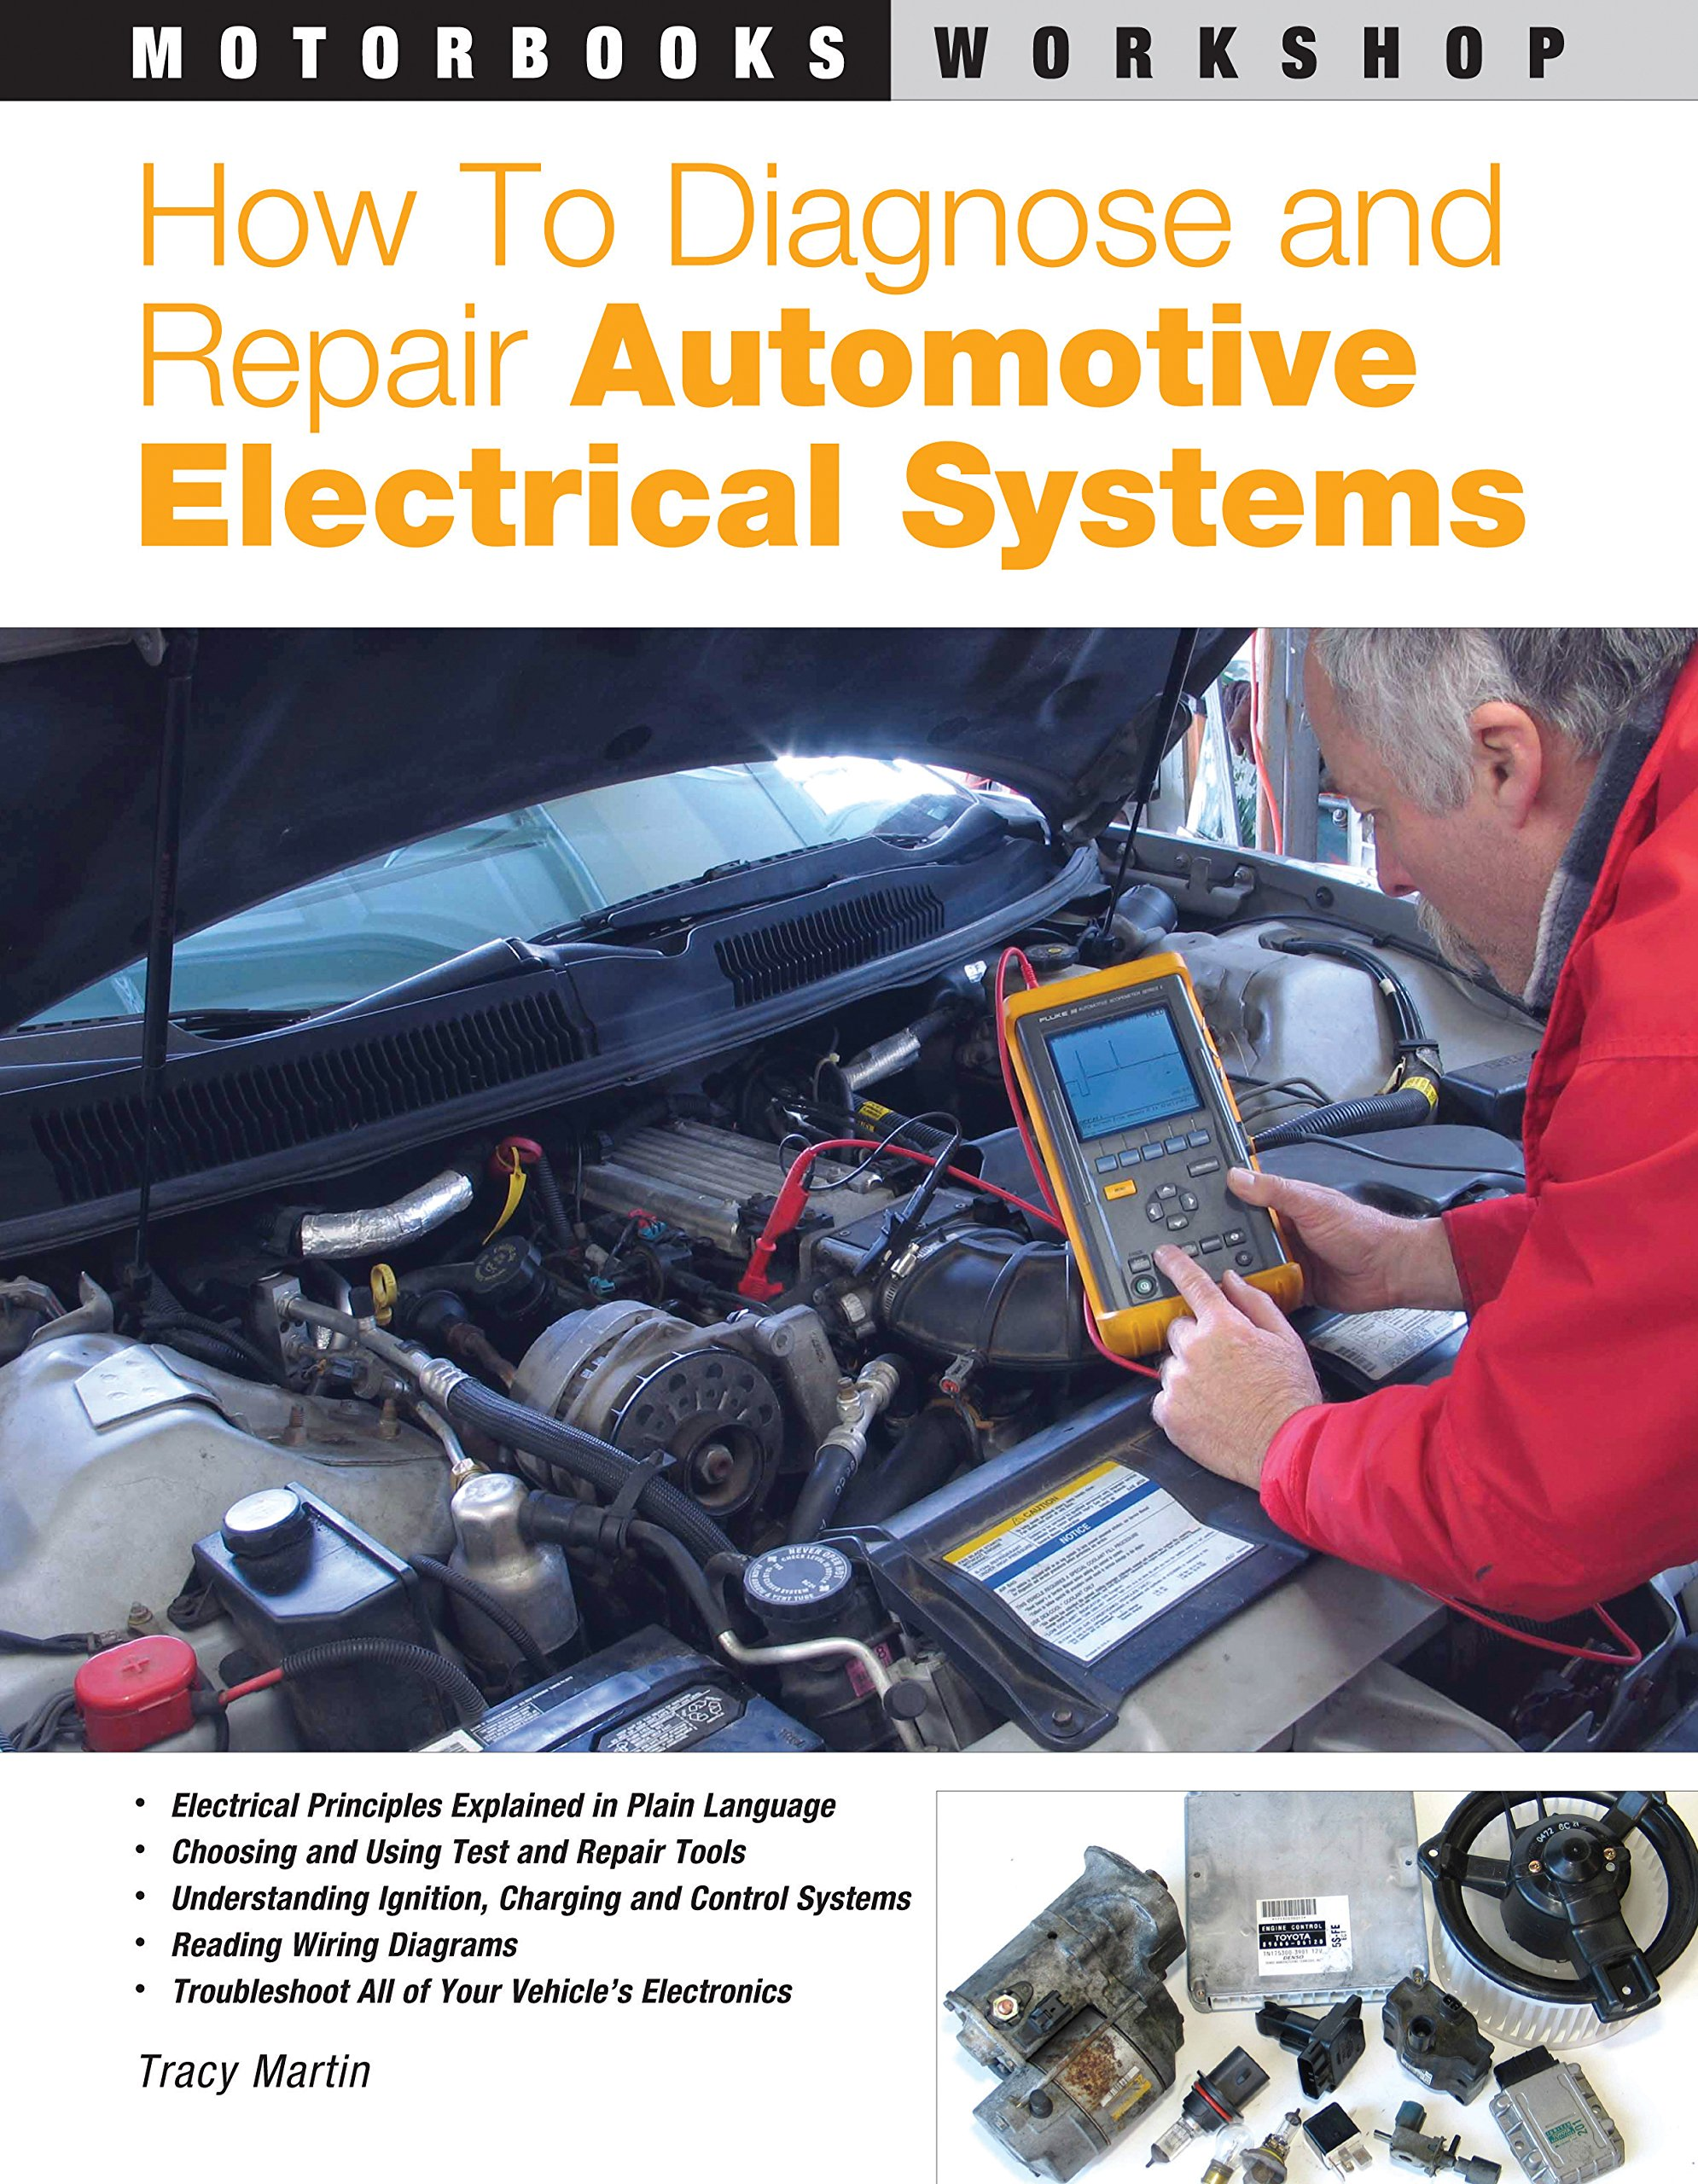 How To Diagnose And Repair Automotive Electrical Systems Motorbooks Outlet Switch Wiring1 Diagram Diagosis Workshop Tracy Martin 8601404402180 Books